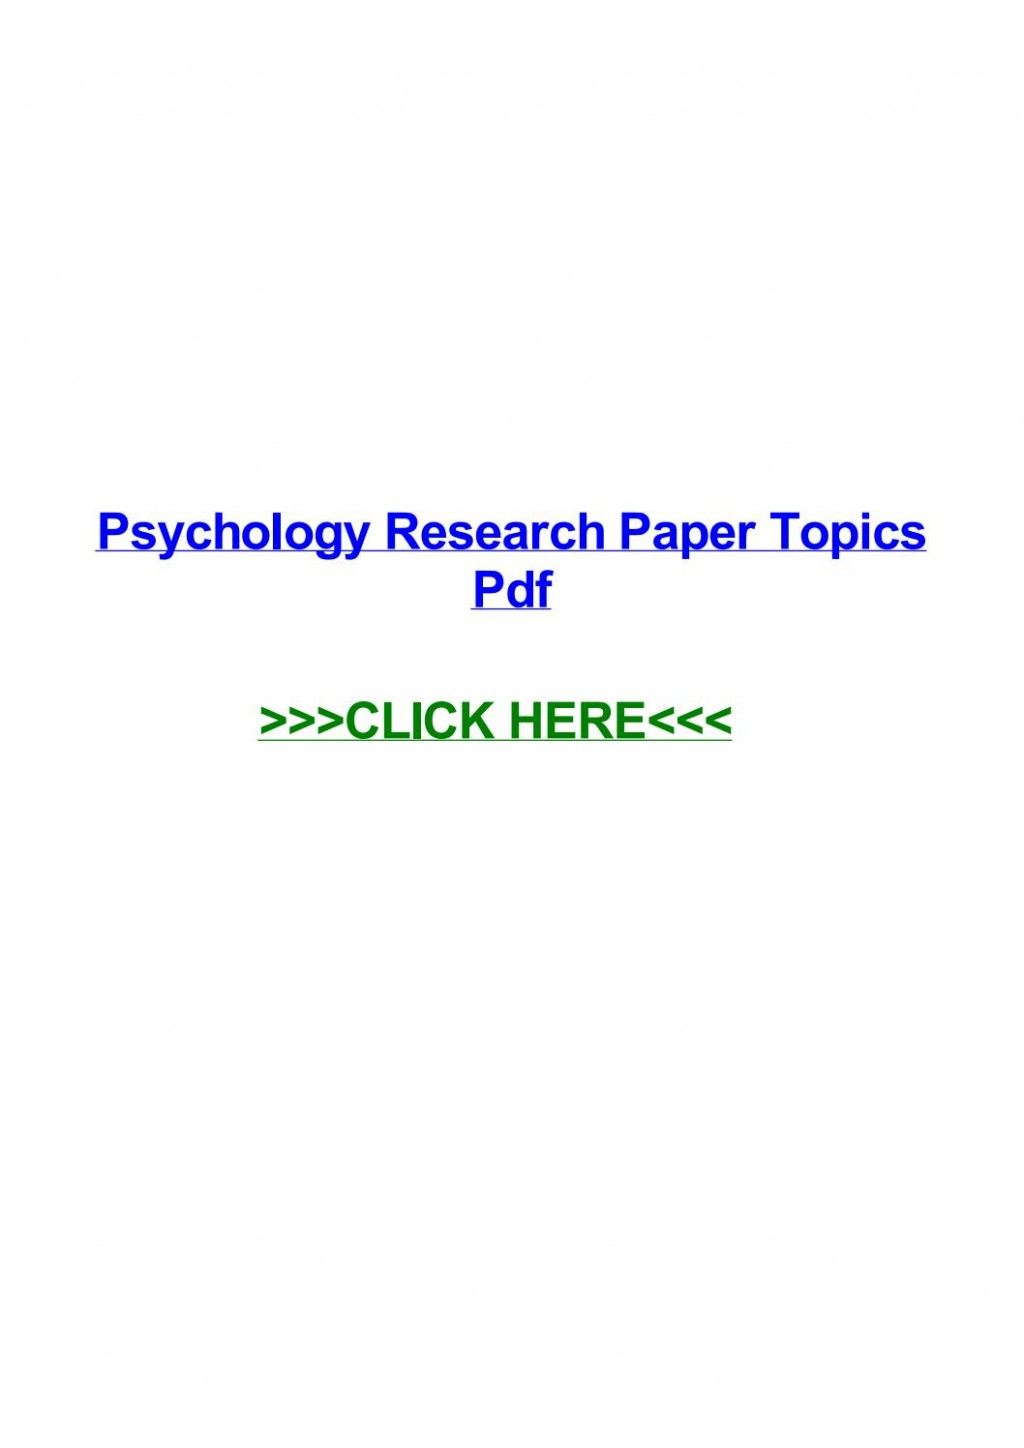 017 Page 1 Research Paper Psychology Striking Topics For High School Students Reddit Large